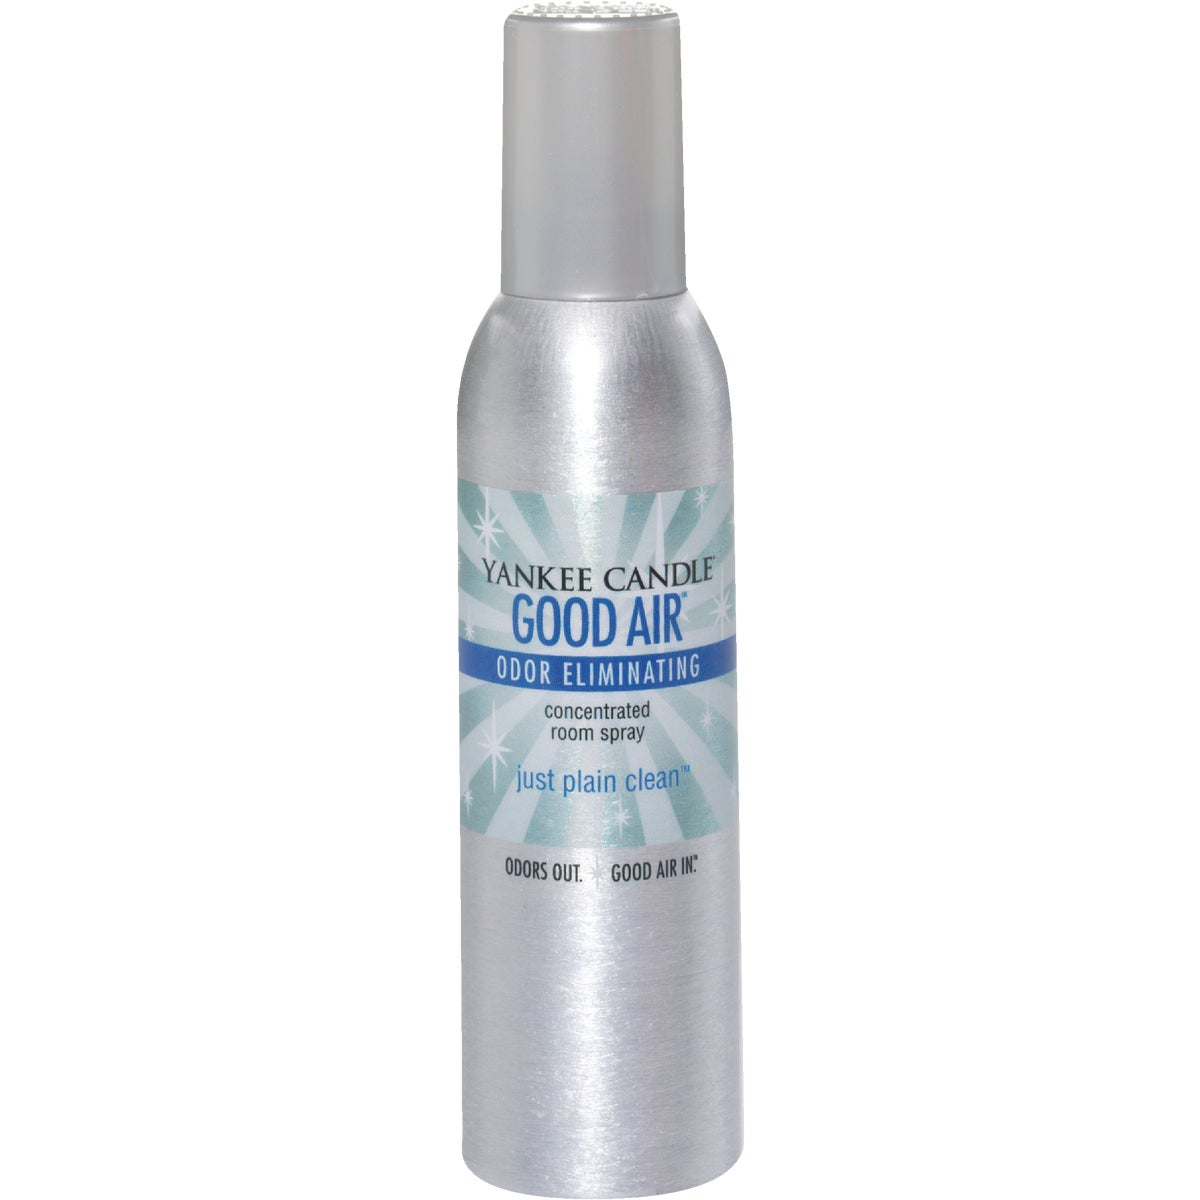 2OZ GOOD AIR ROOM SPRAY - 1160102 by Yankee Candle Co